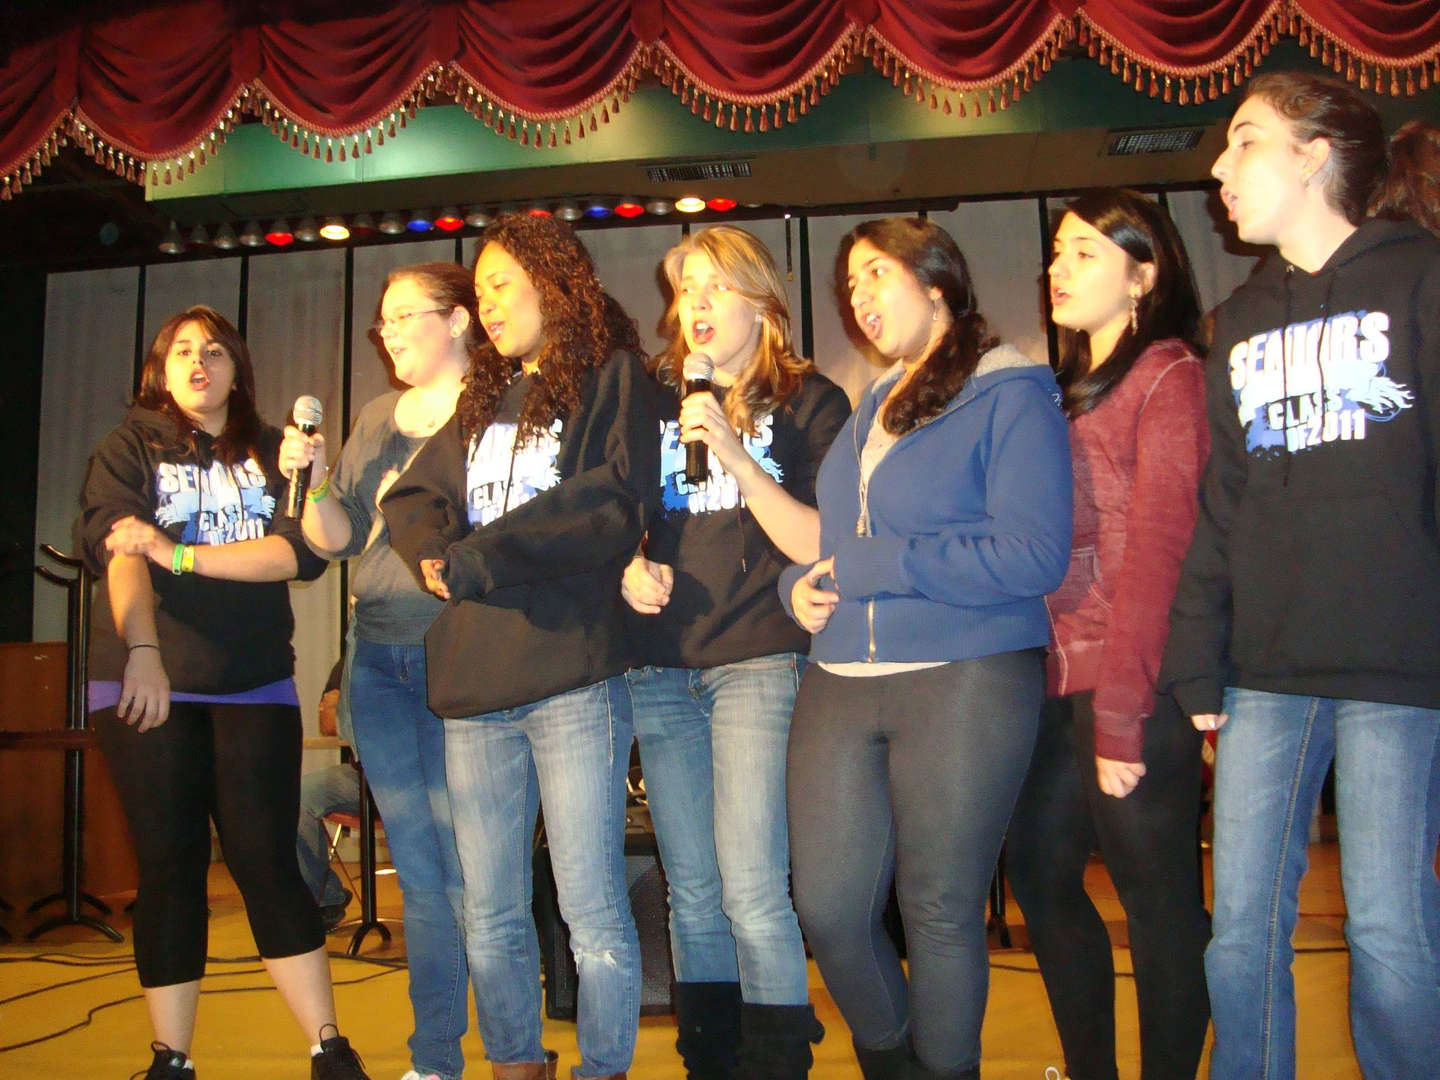 A group of students sing with microphones in their hands